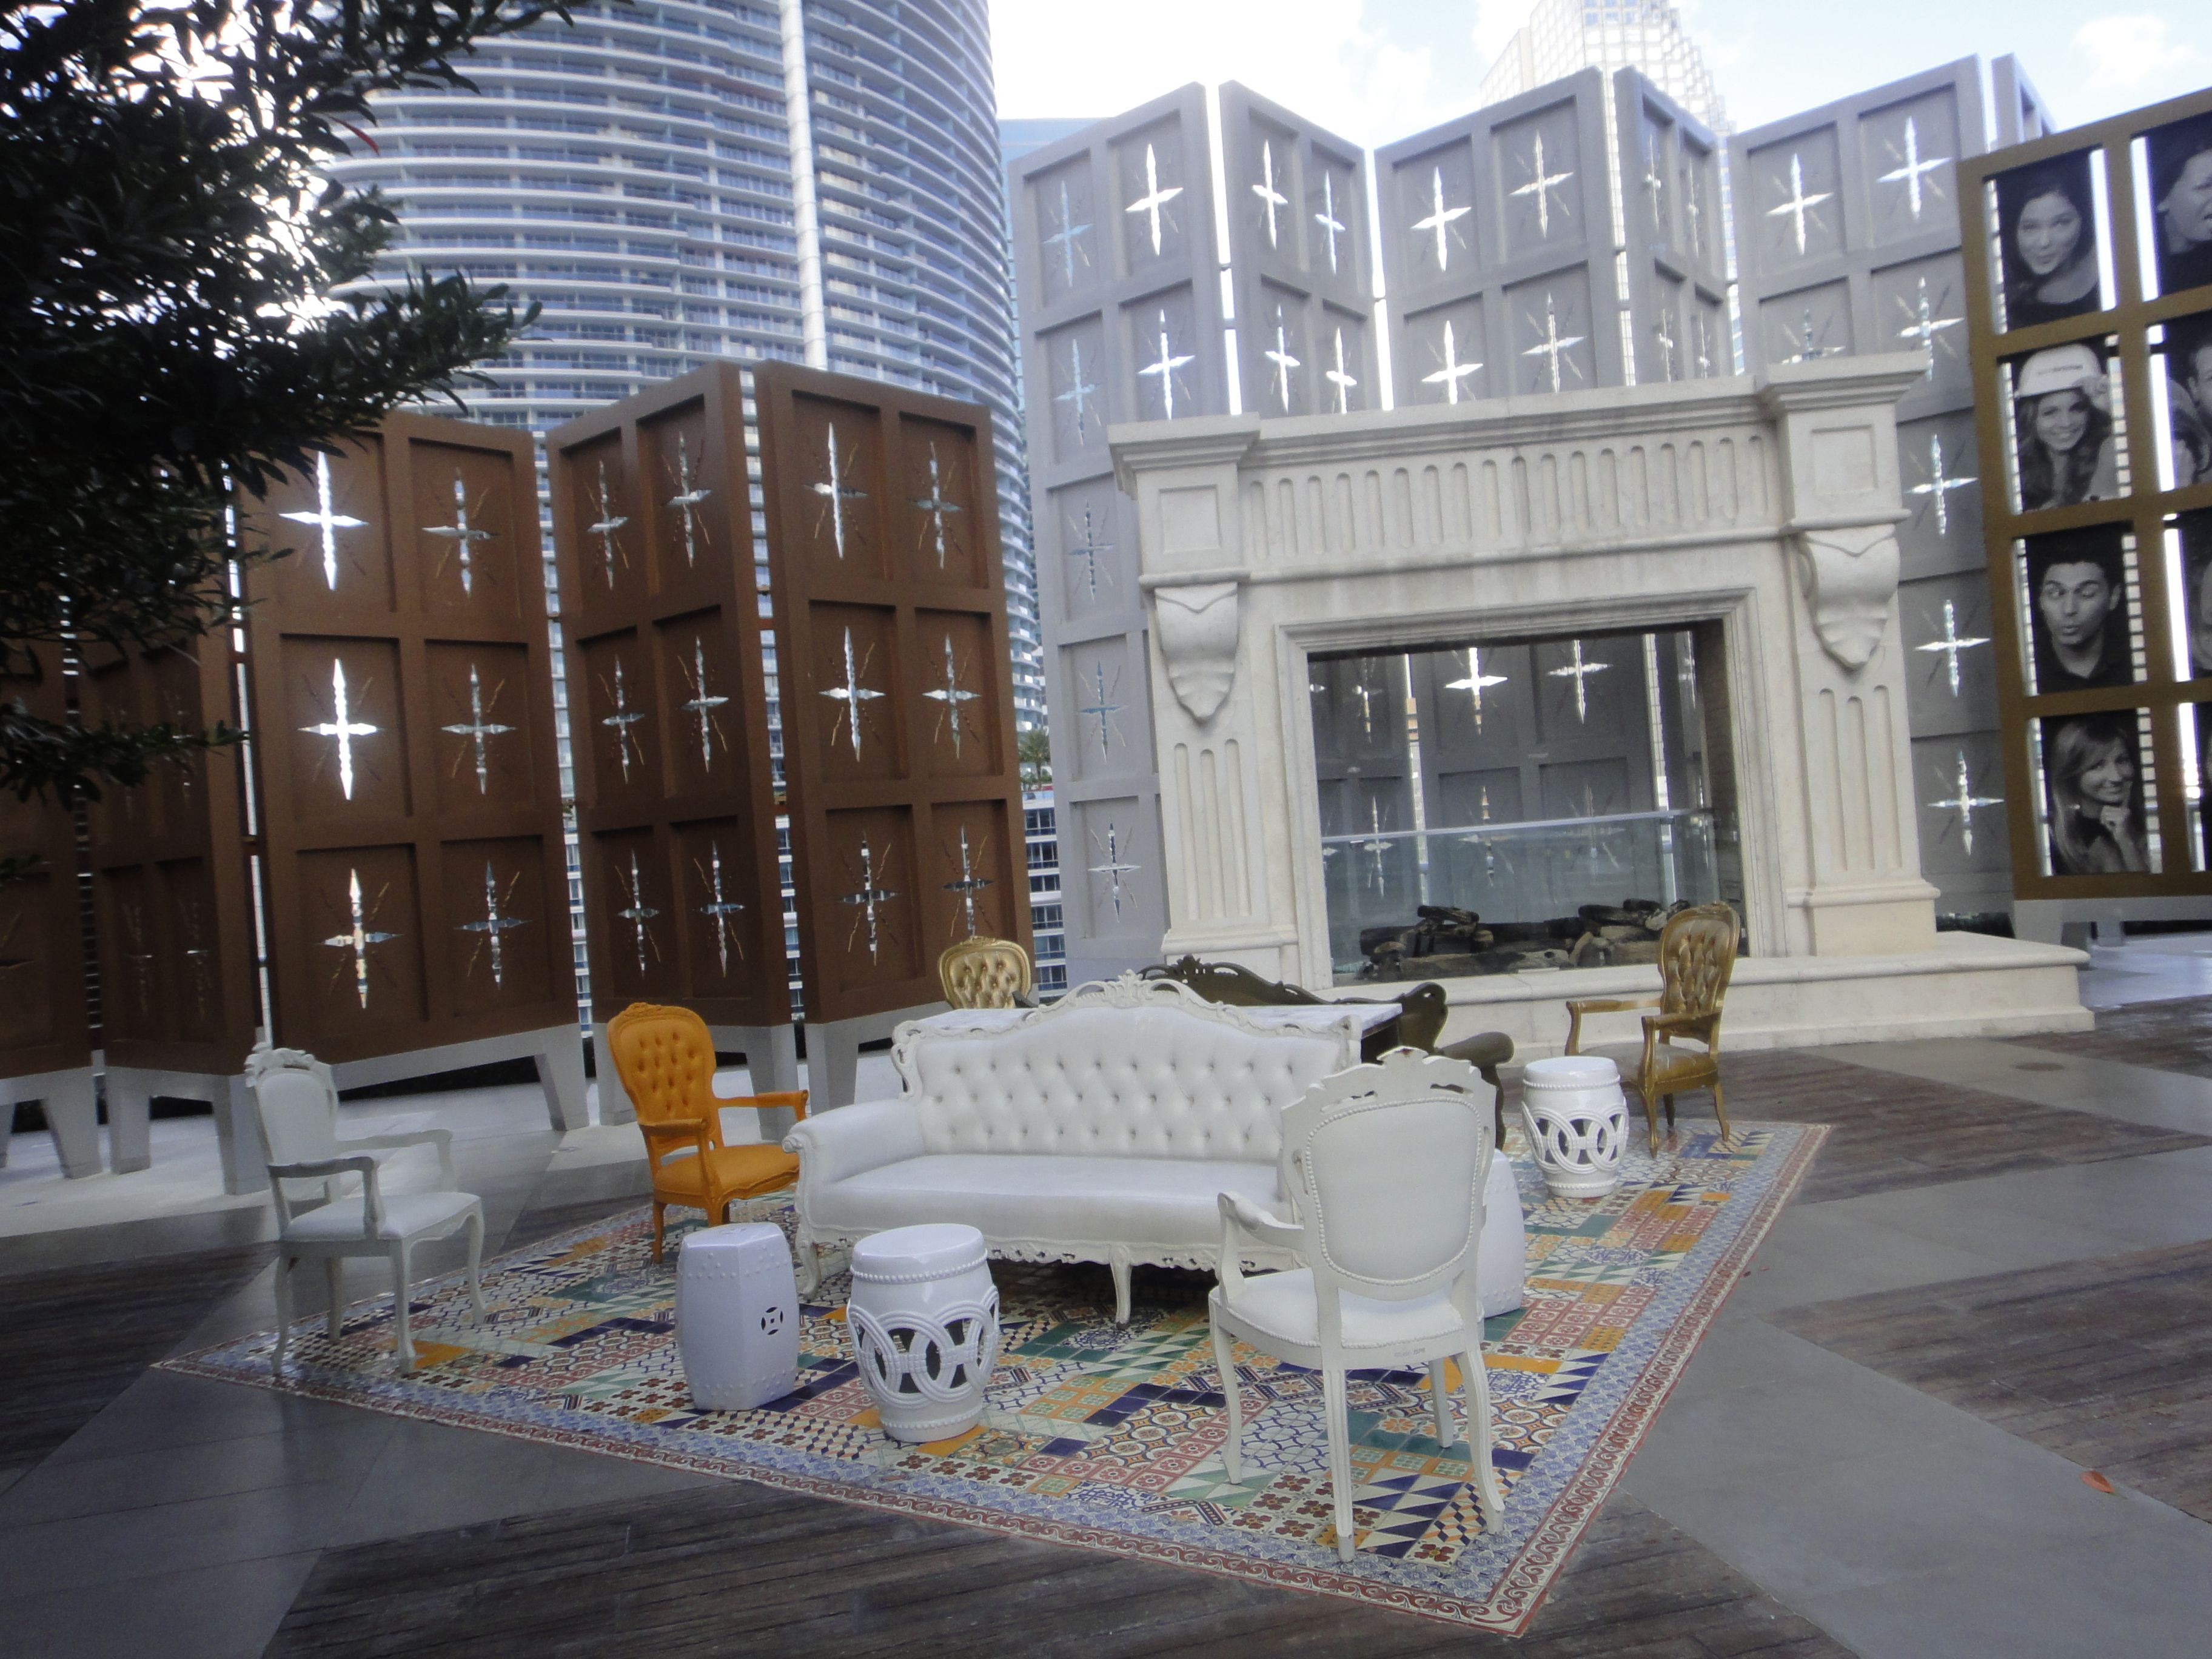 House Viceroy Miamiu0027s Patio has unexpected